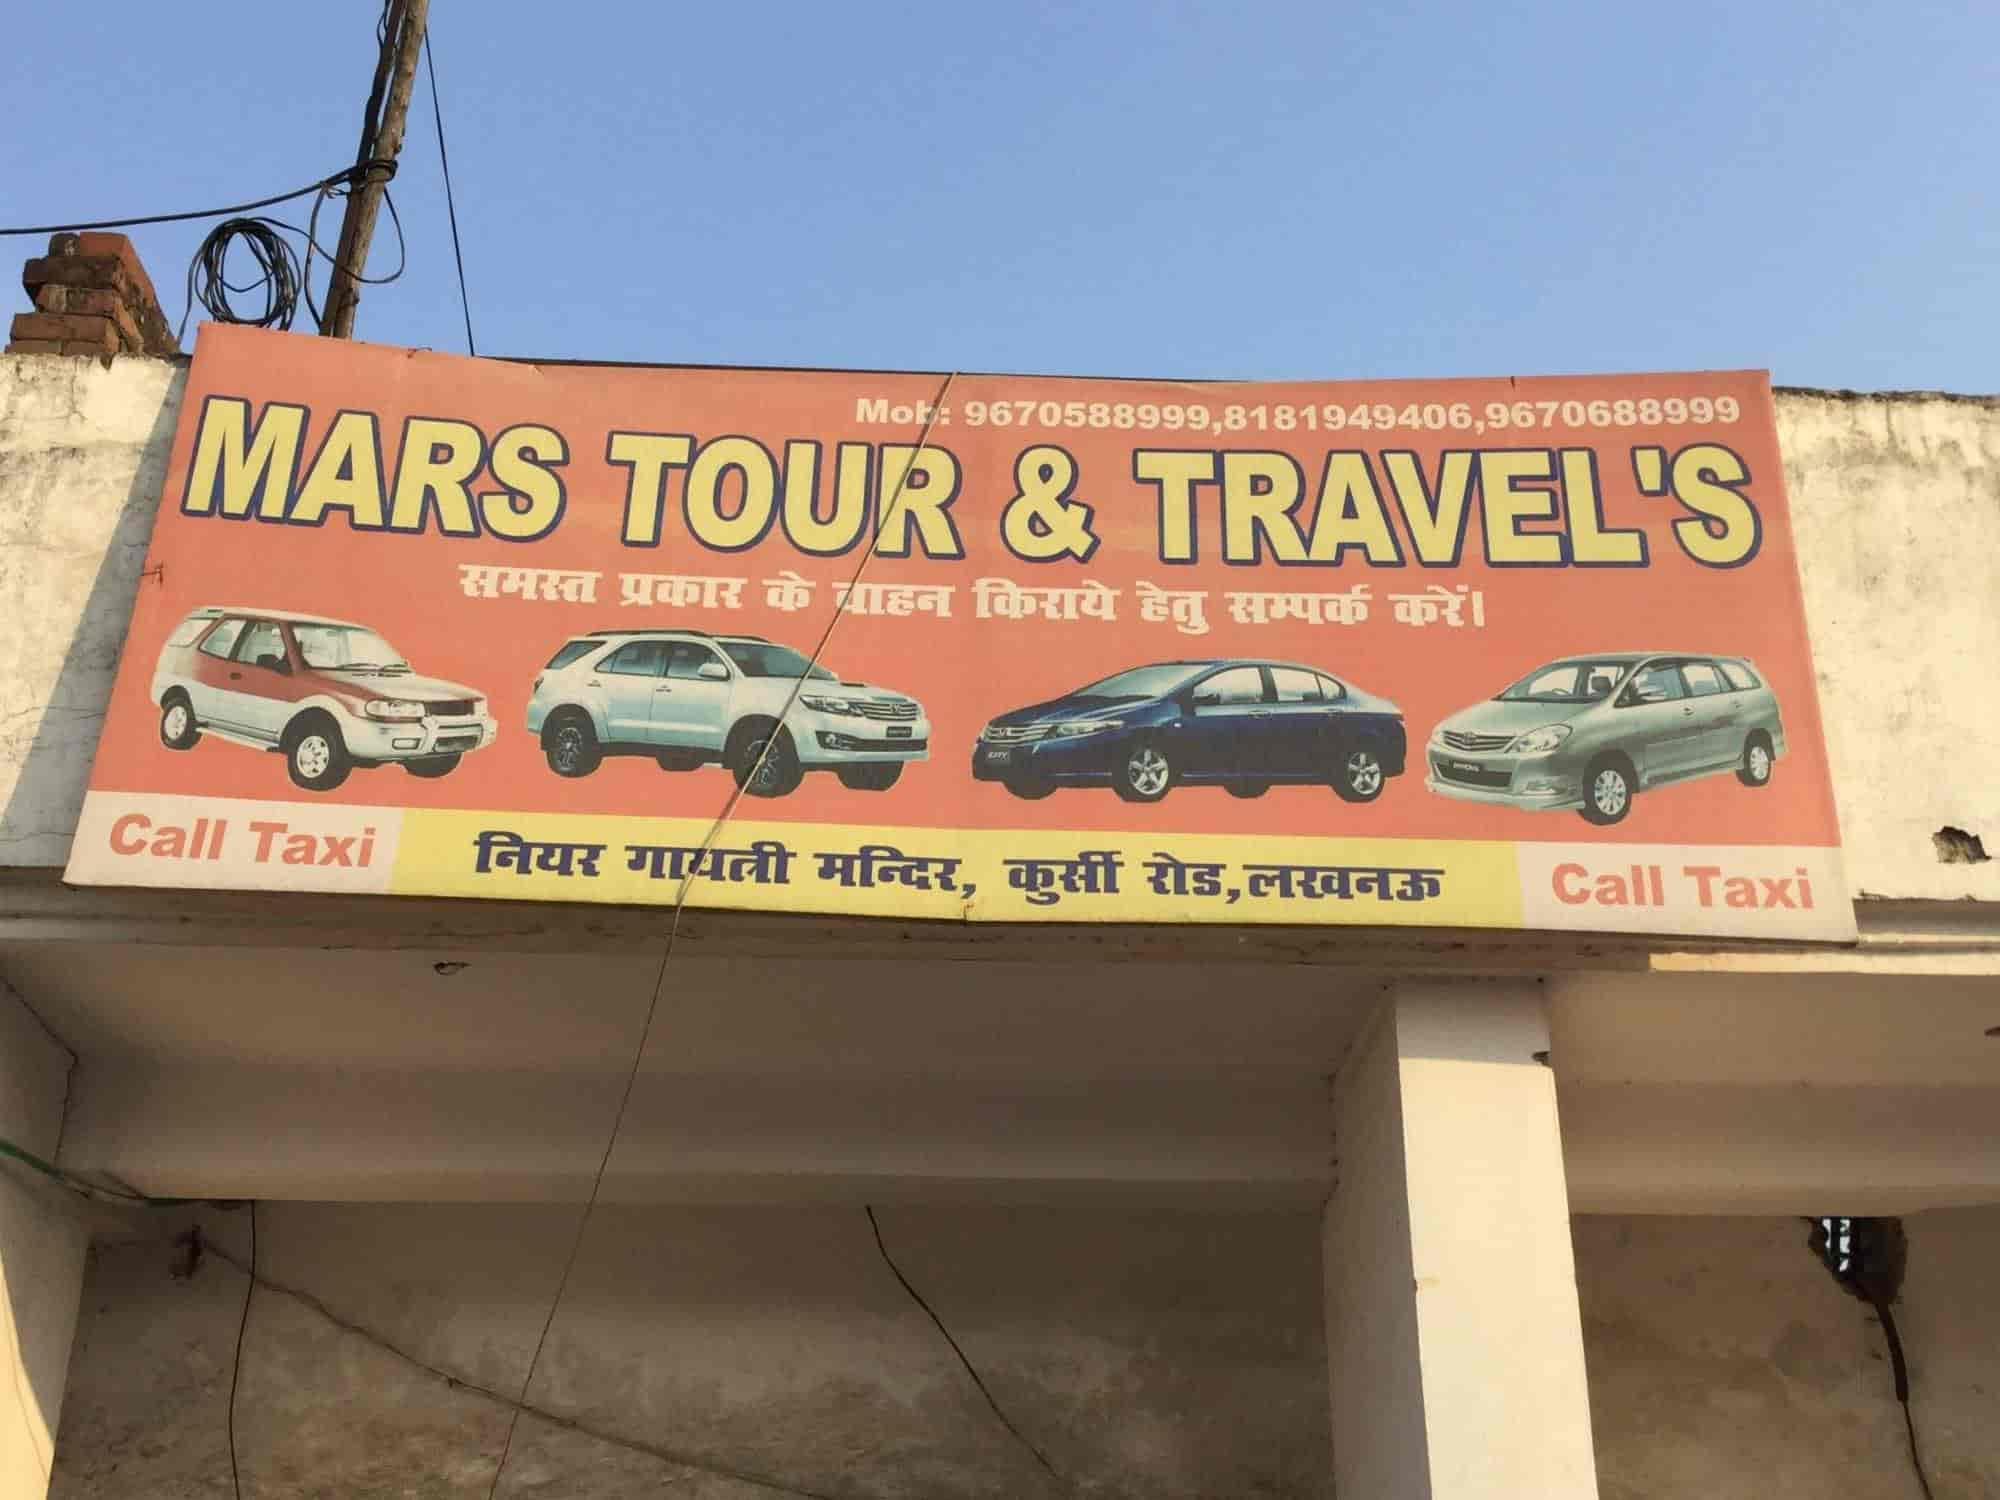 Delight Travelinks Photos, Indira Nagar, Lucknow- Pictures & Images